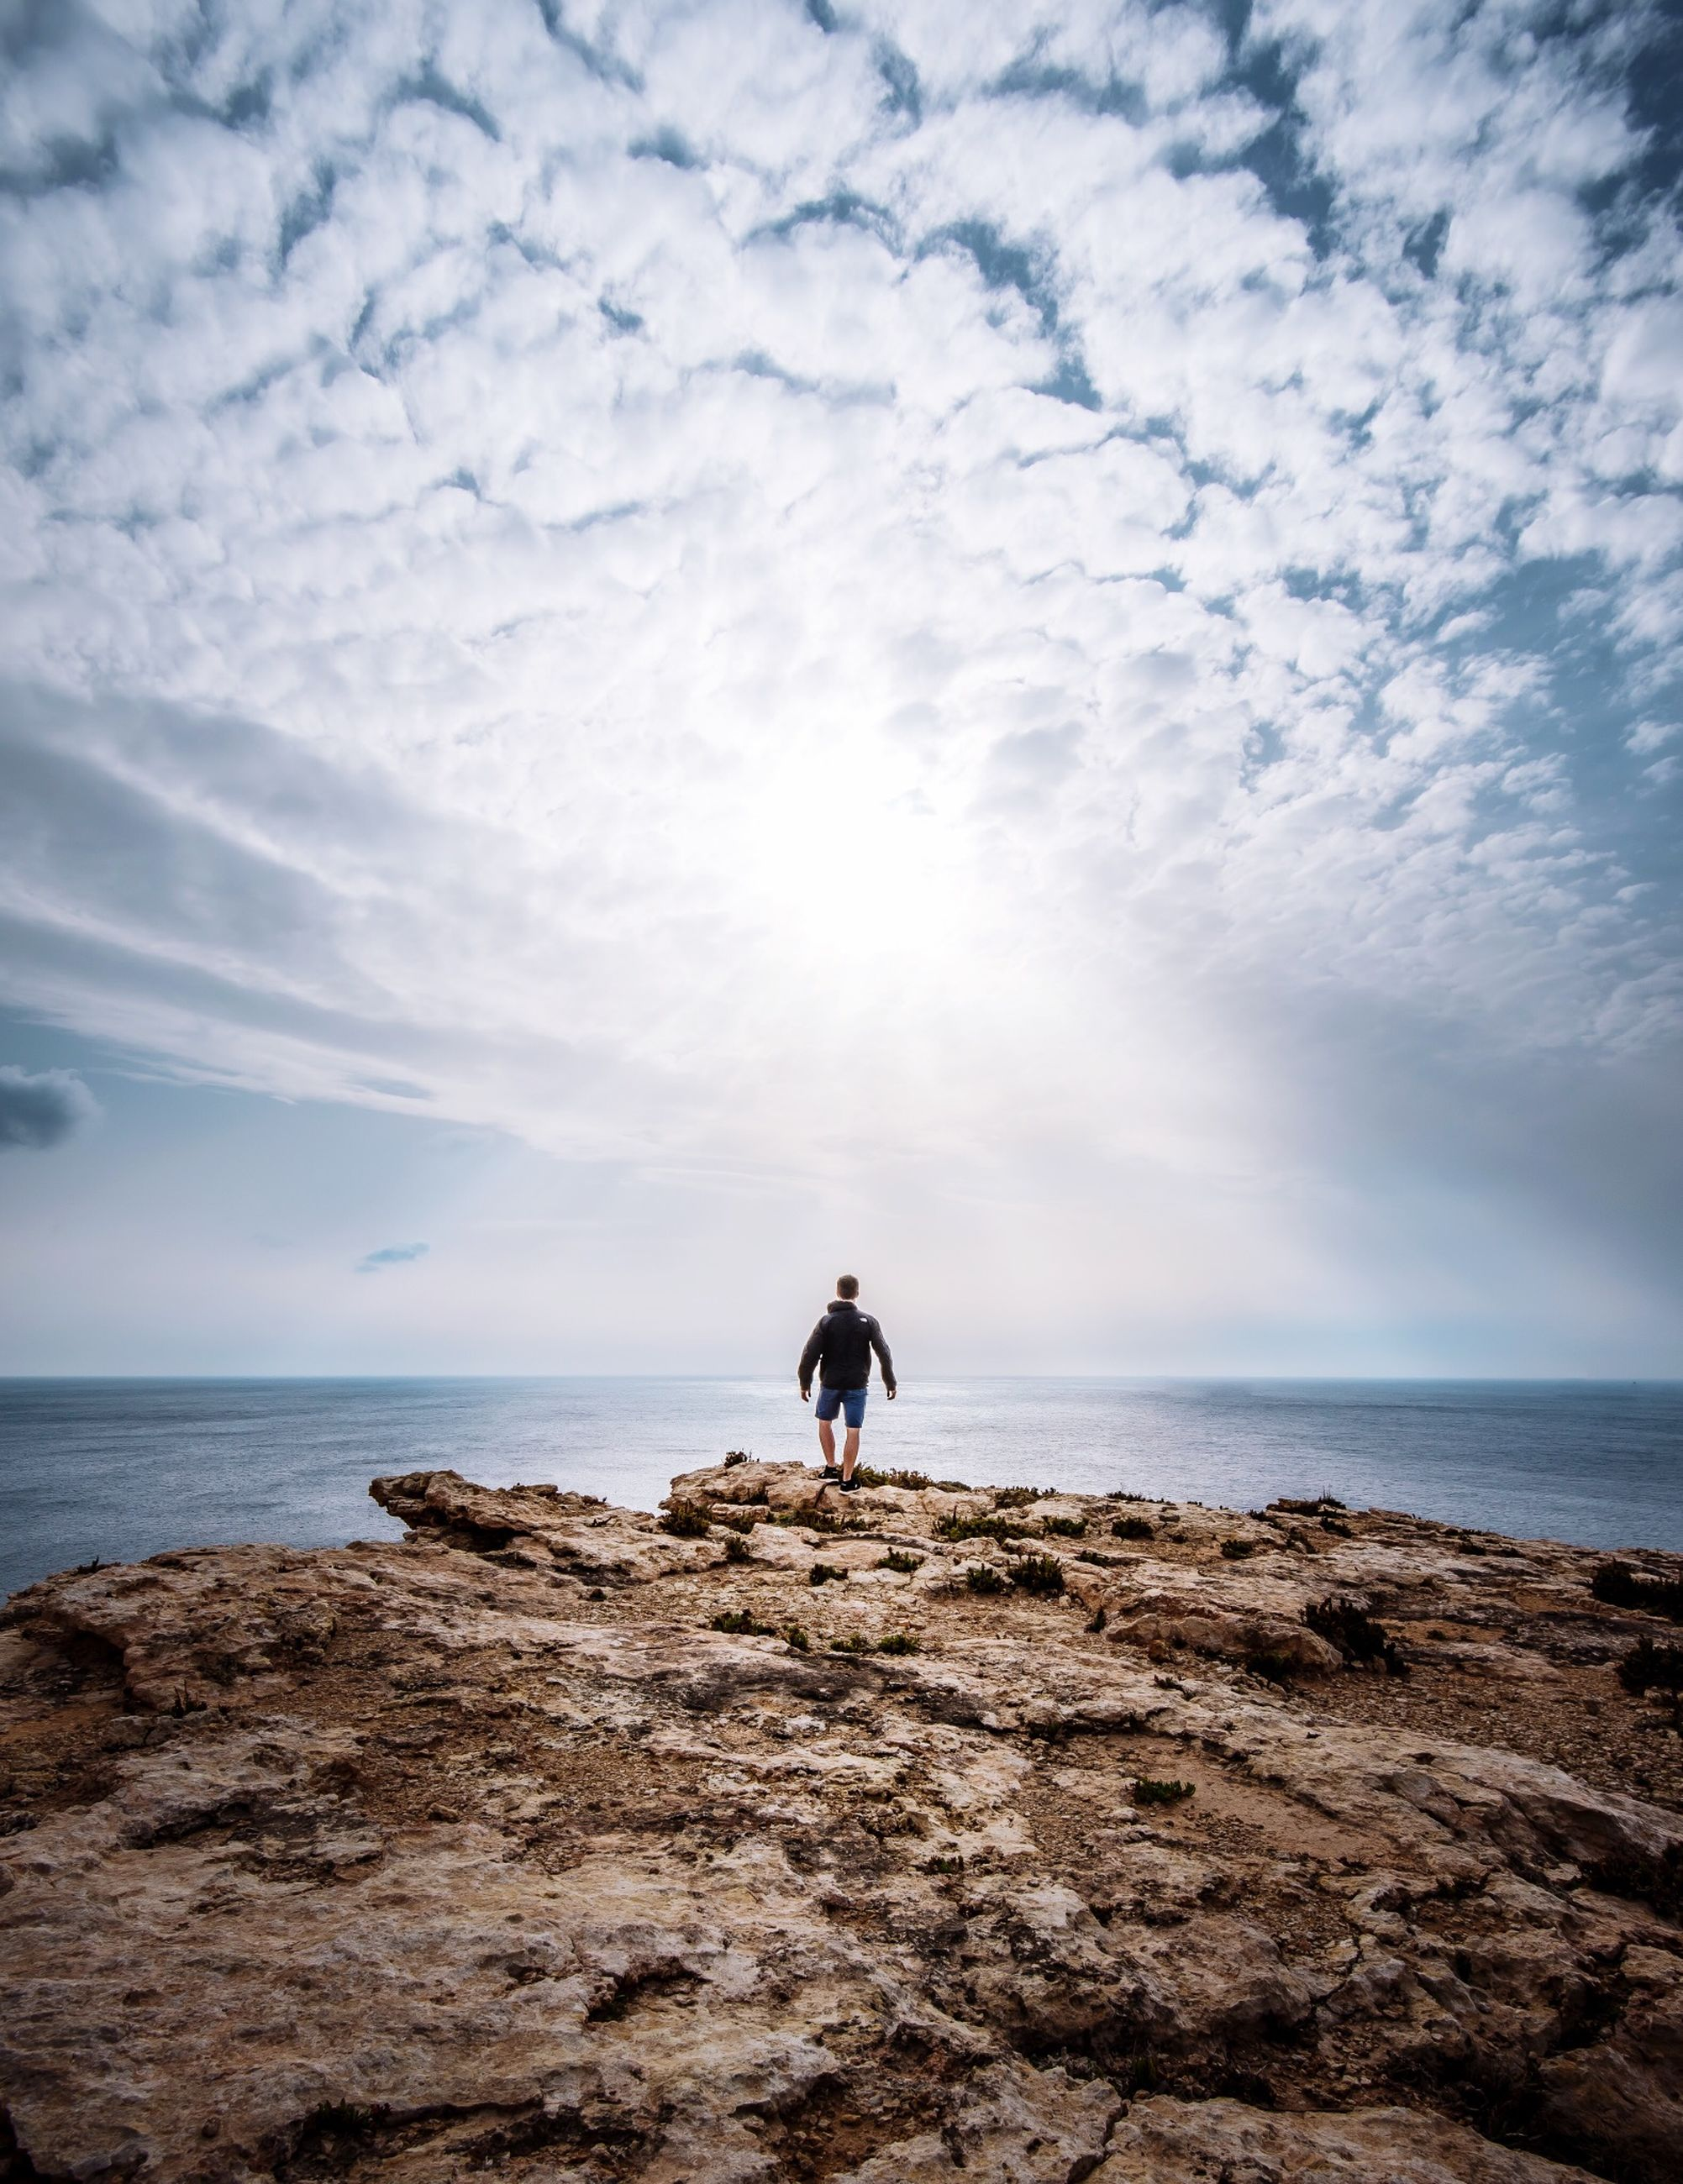 sea, horizon over water, sky, water, beach, cloud - sky, tranquil scene, scenics, tranquility, full length, rear view, shore, beauty in nature, standing, nature, dog, cloud, lifestyles